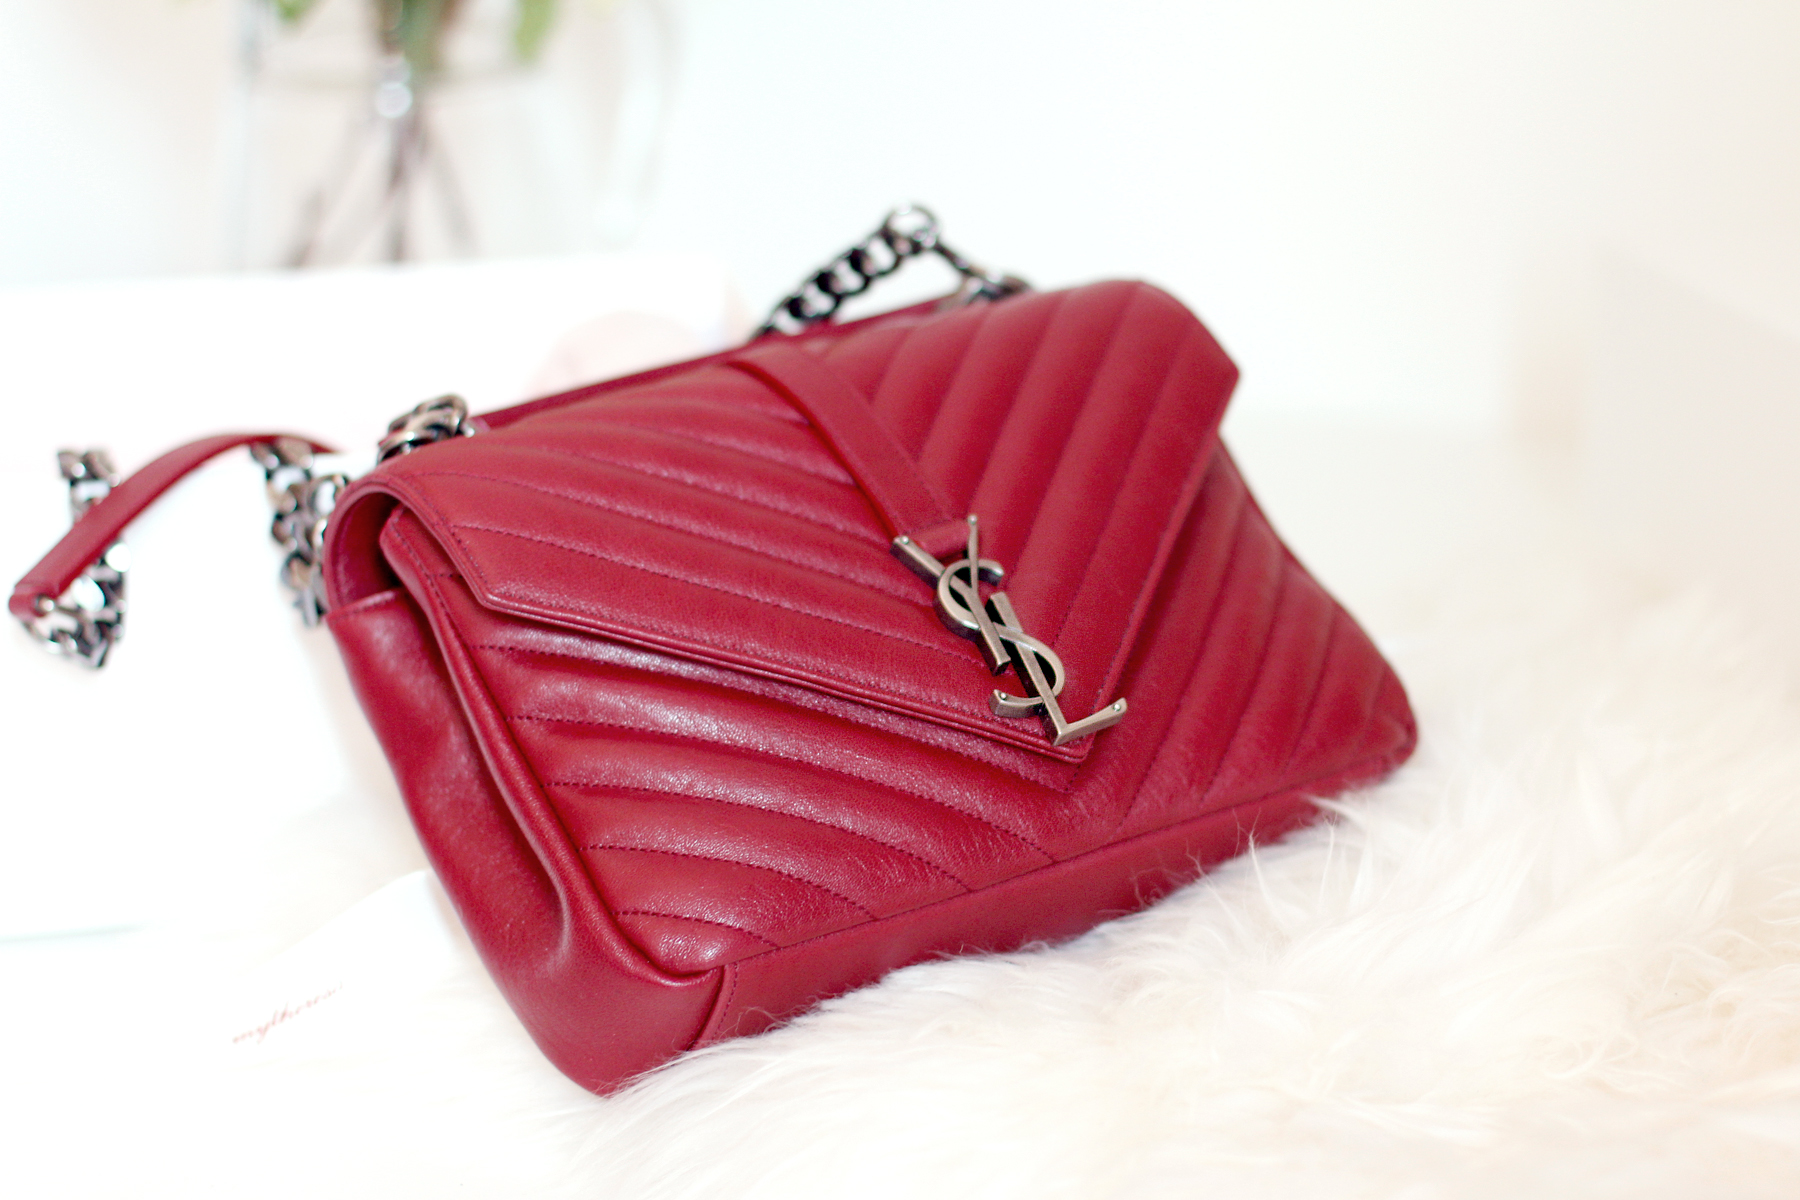 YSL Saint Laurent Paris Classic Monogramme Flap Bag Red Toss Or Take fashionblogger germanblogger cats & dogs ricarda schernus styleblogger accessoires düsseldorf berlin 1